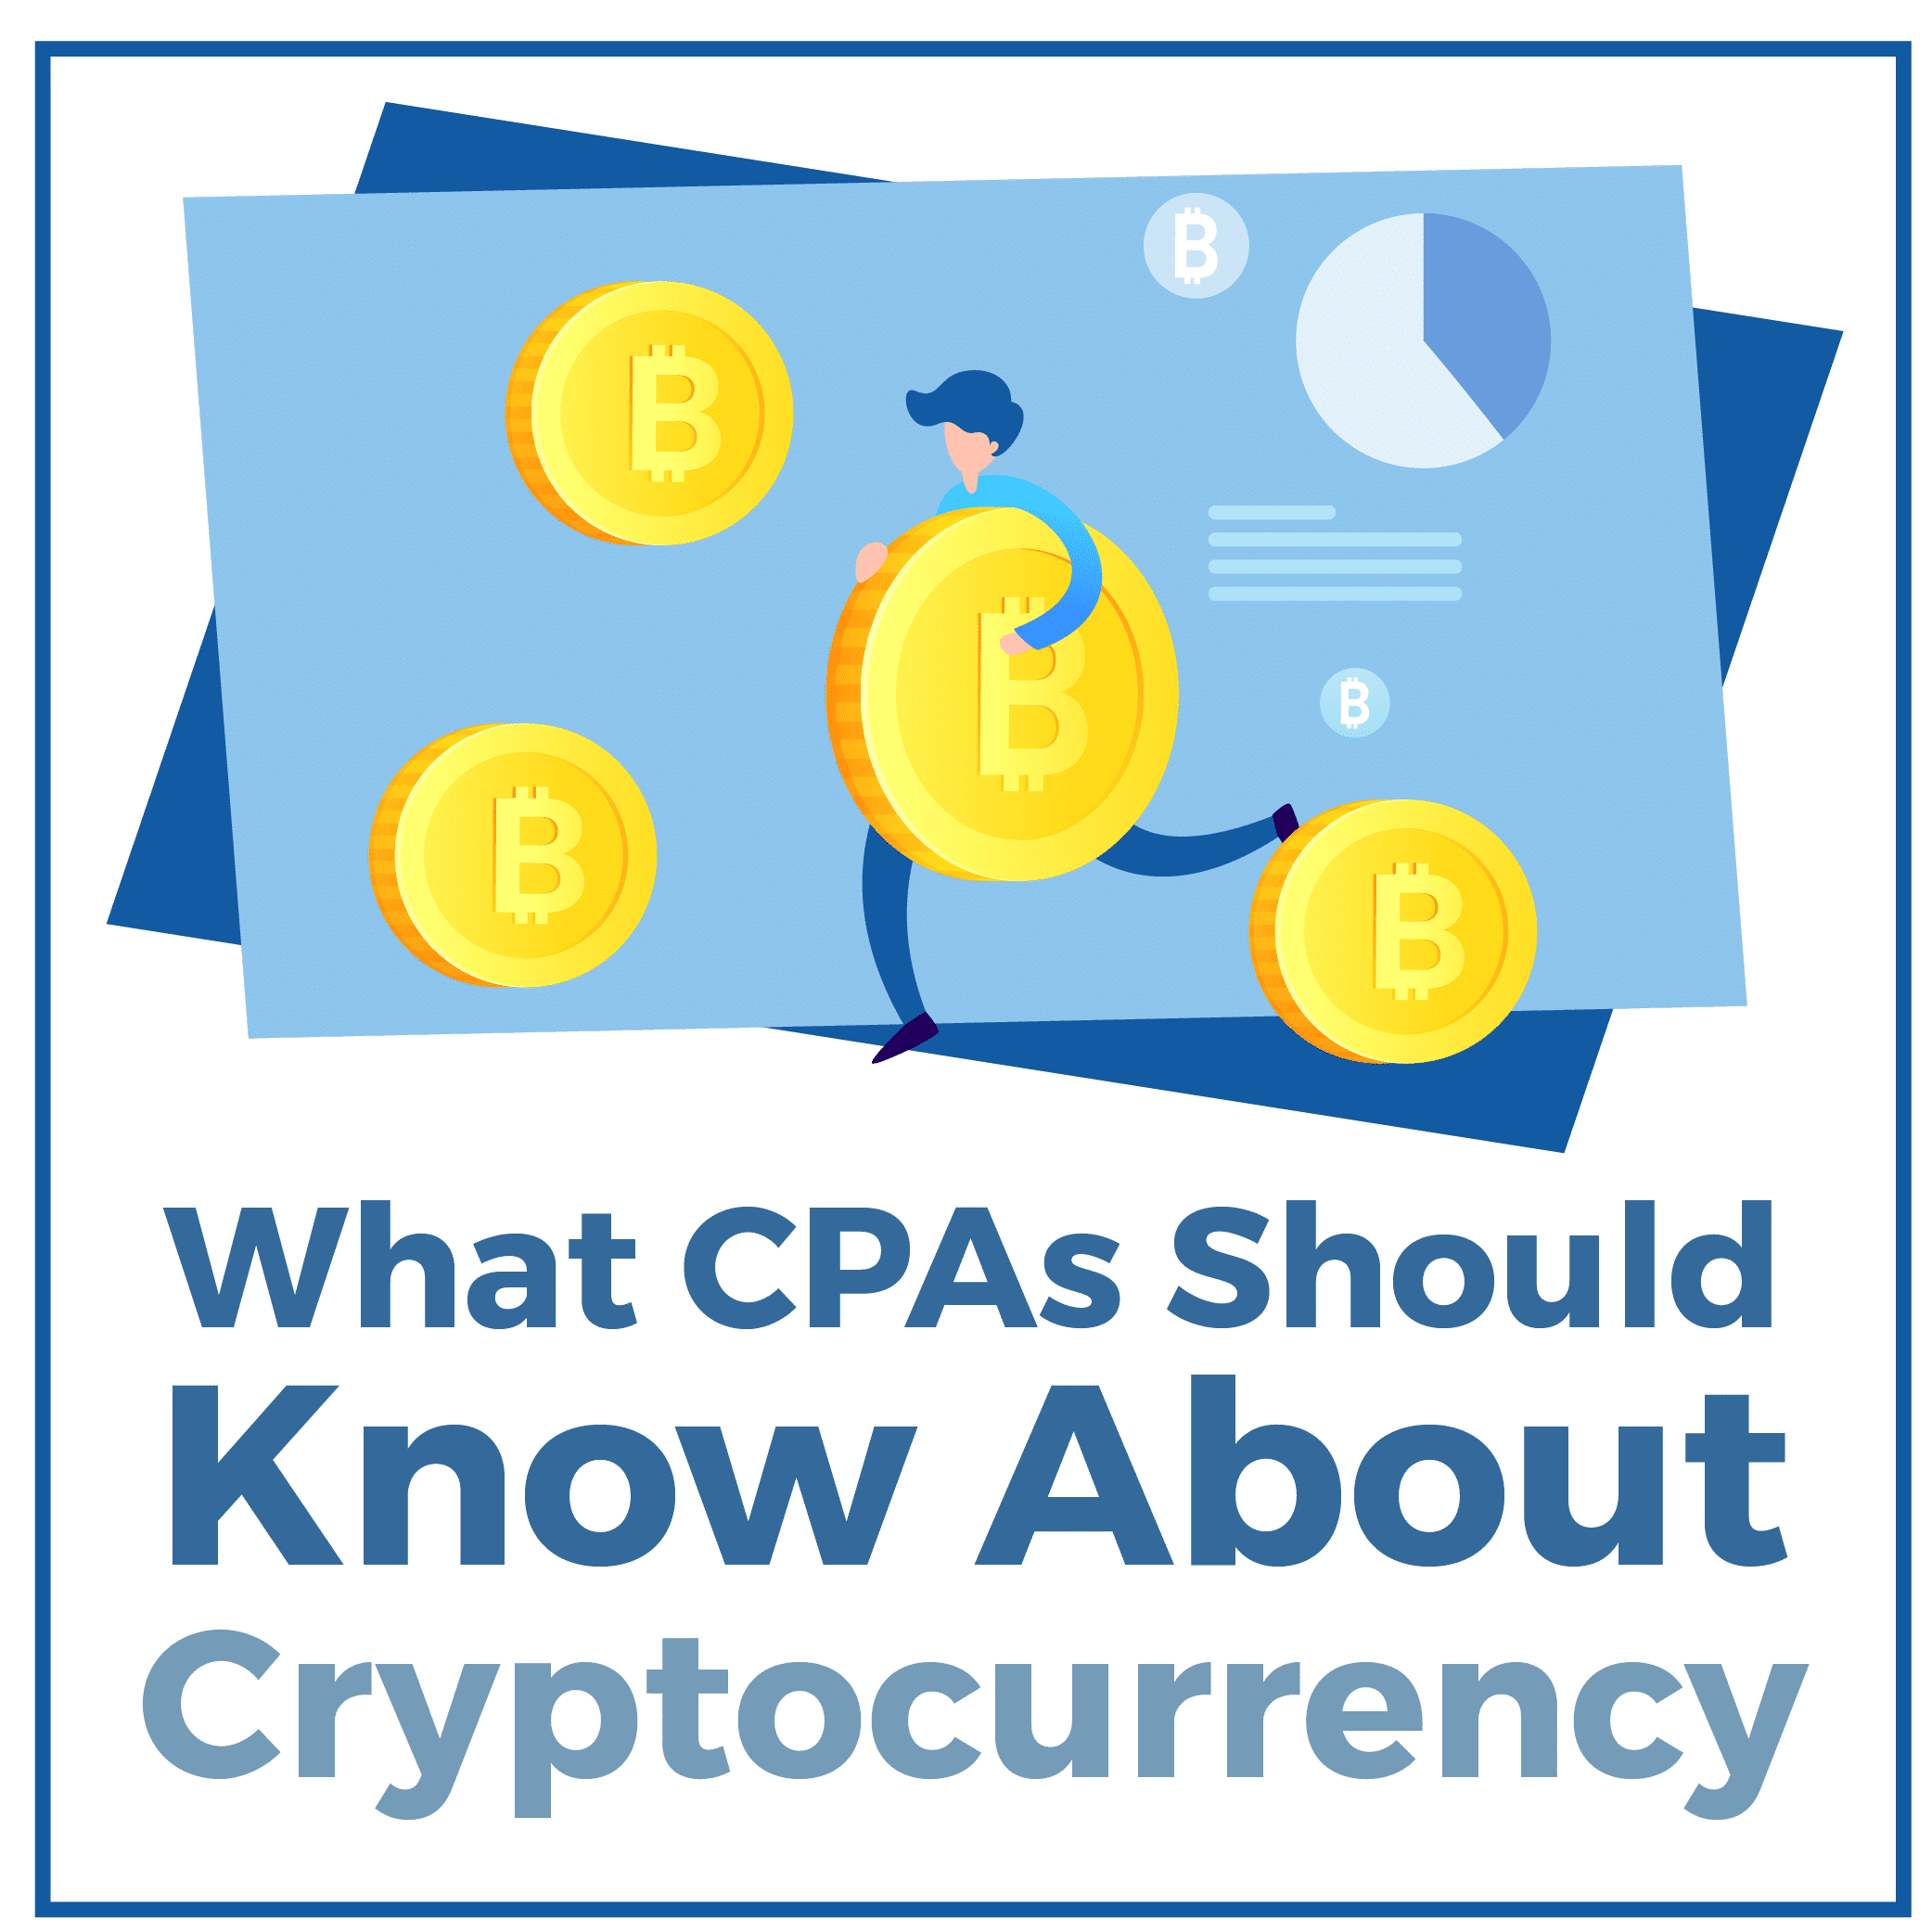 What CPAs Should Know About Cryptocurrency